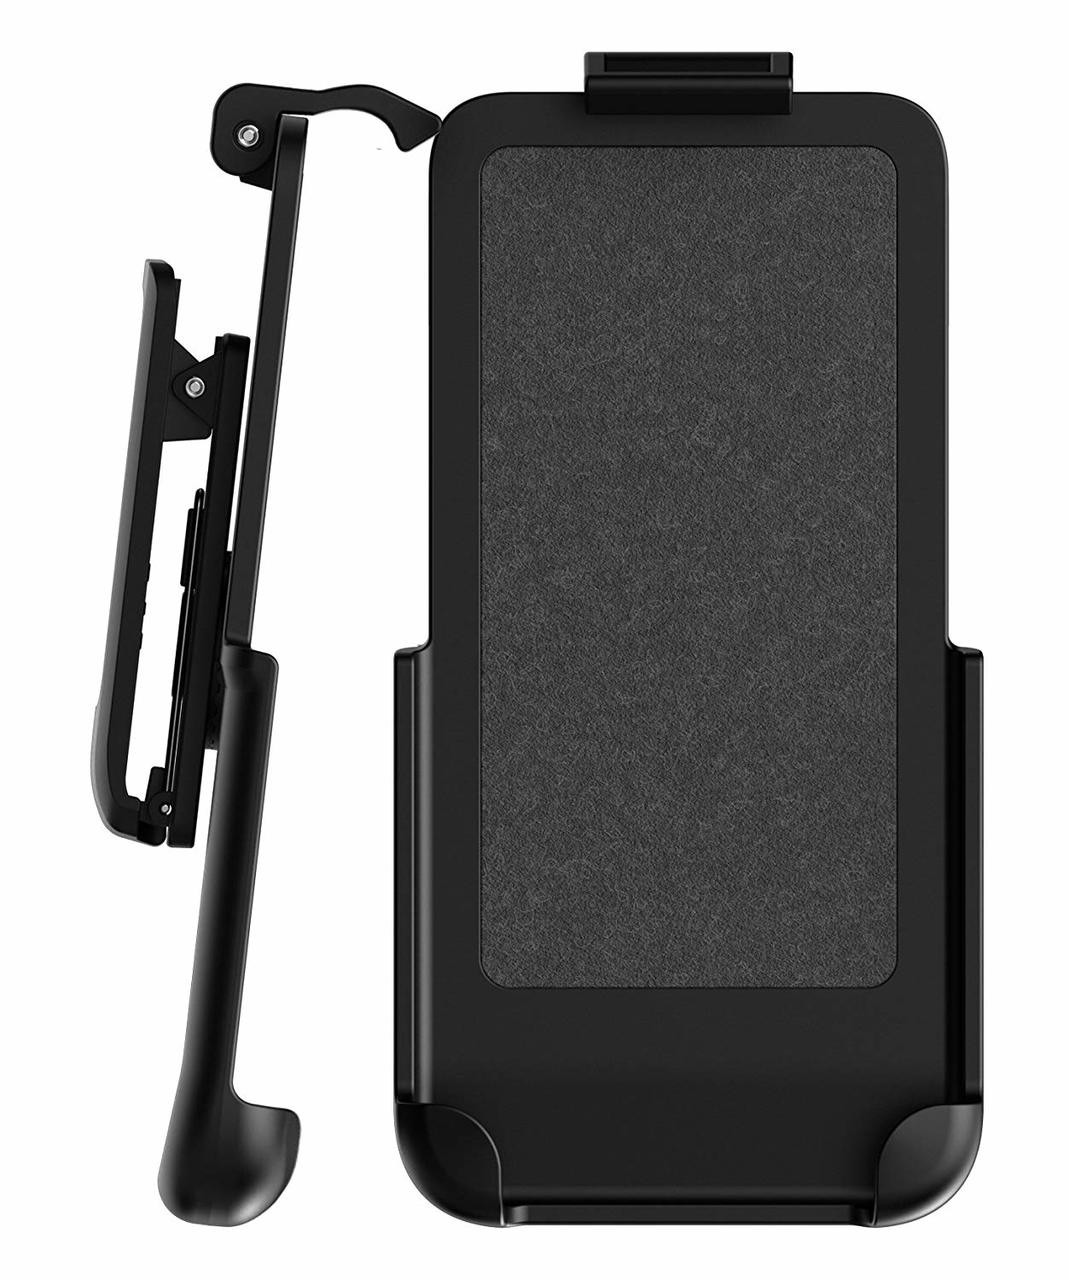 low priced 3e13a aa067 Encased OtterBox Belt Clip Holster for OtterBox Symmetry Google Pixel 2  (case not included)